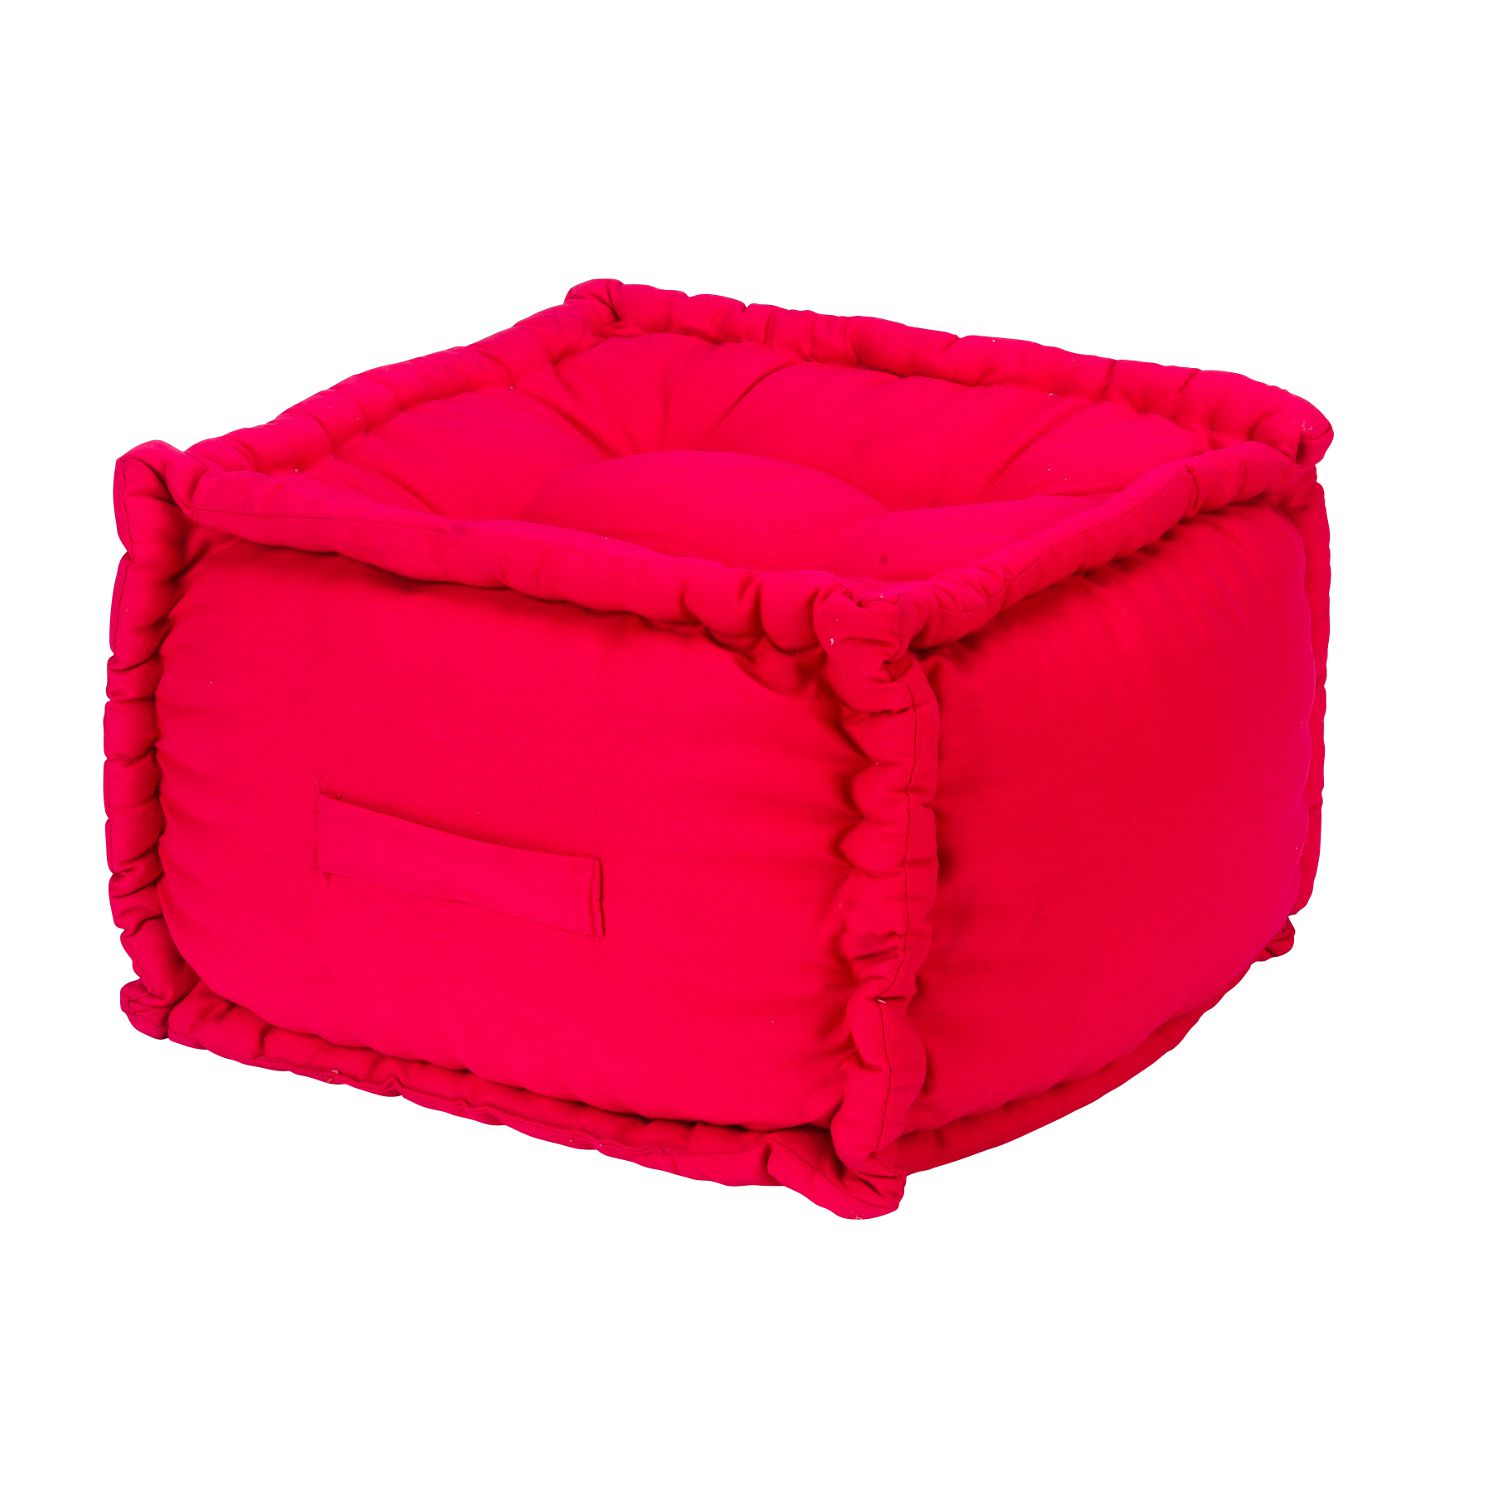 pouf g ant carr 40x40x30cm fuchsia rose autres ebay. Black Bedroom Furniture Sets. Home Design Ideas